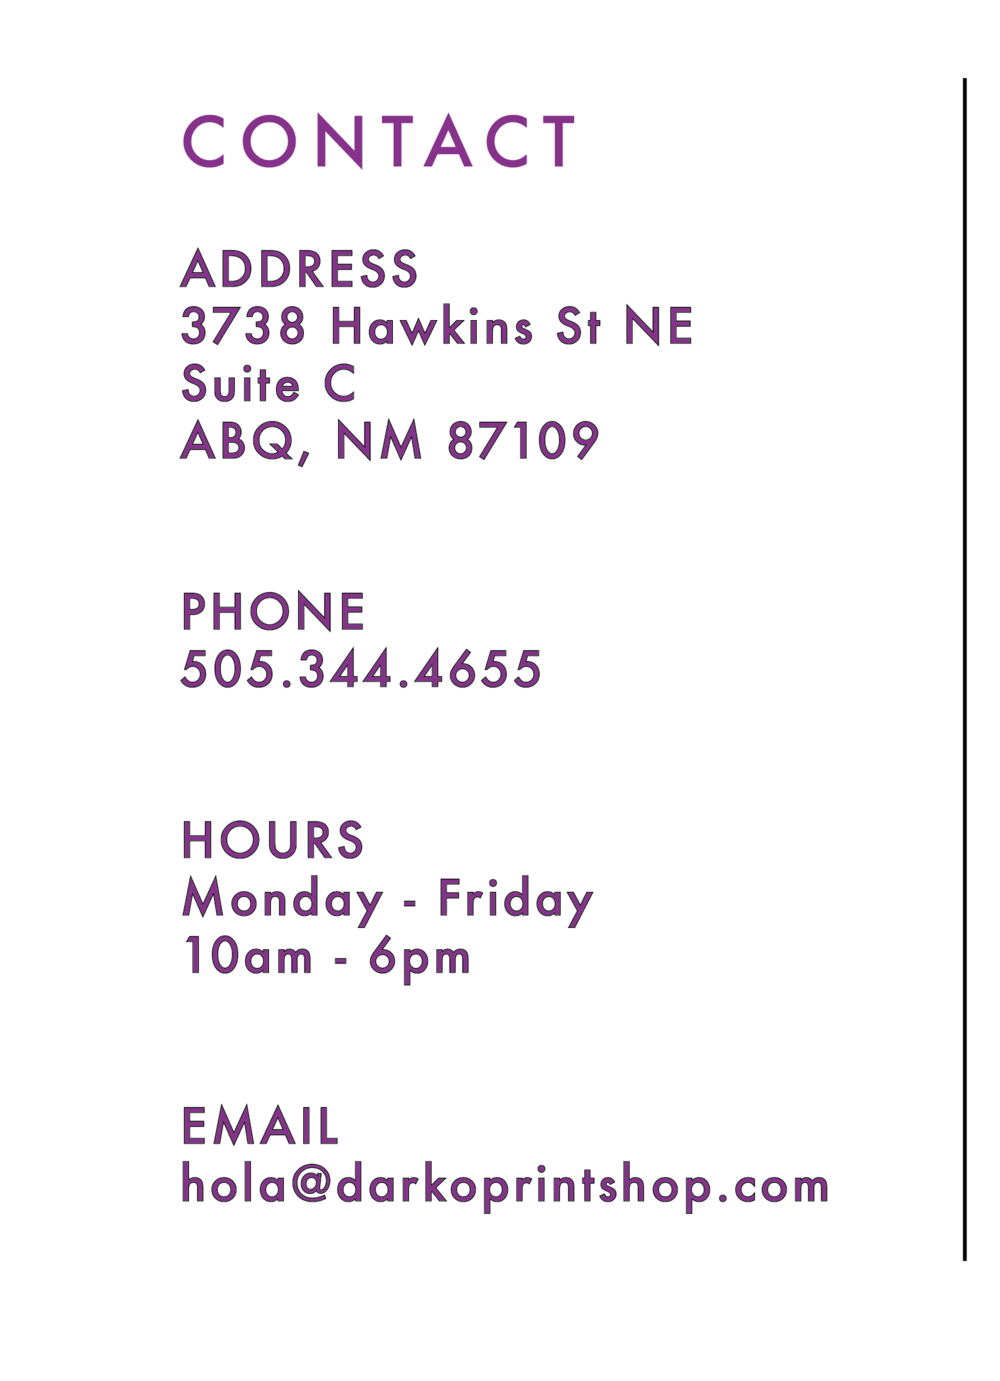 Hola. - Call, email, or stop by, we're always happy to help!